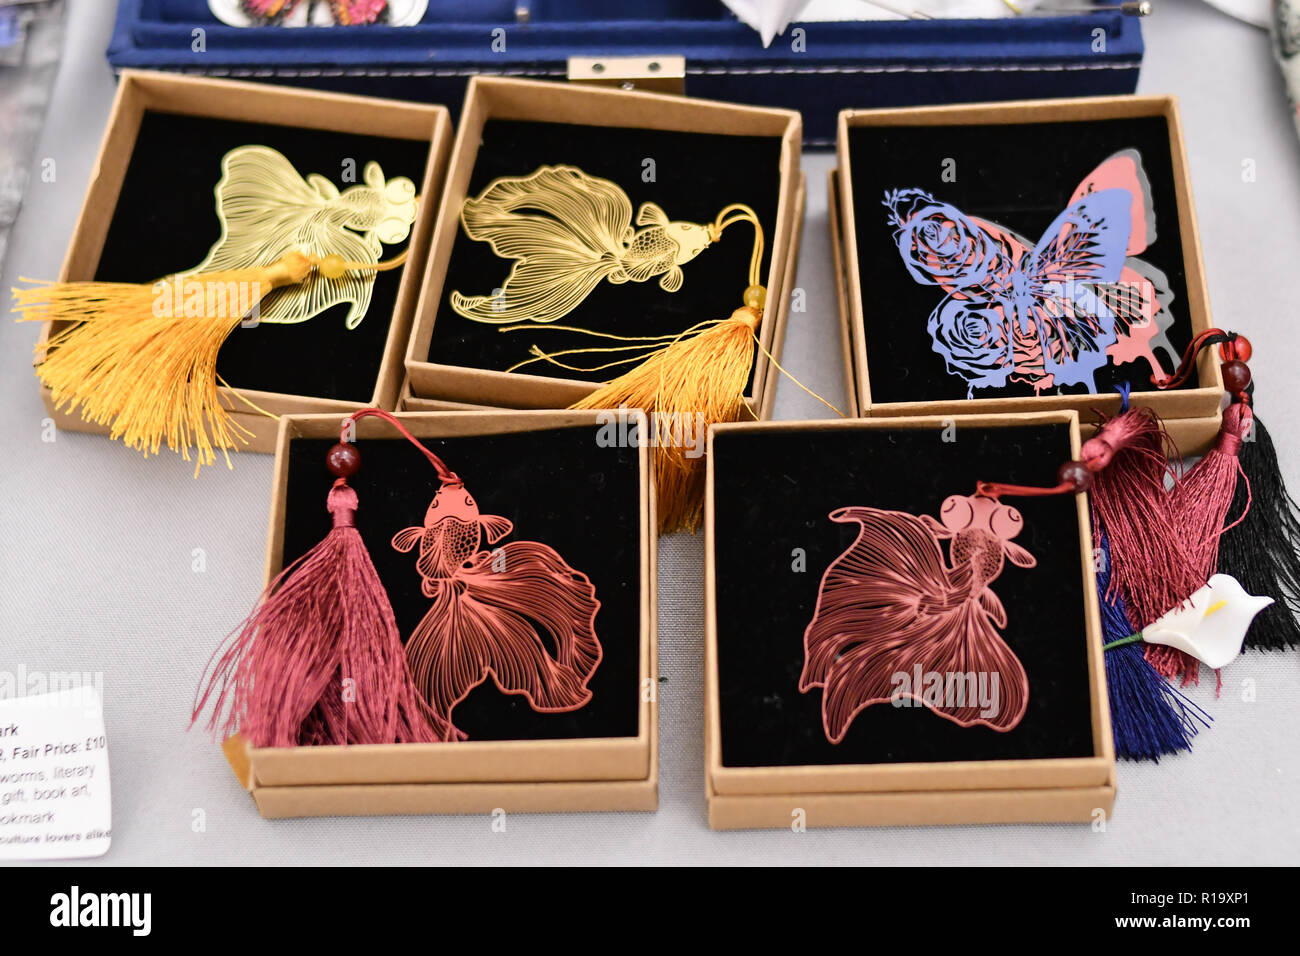 London, UK. 10th Nov, 2018. Journey to the East at Winter blossom fair: A celebration of east asian art, craft and design at China Exchange on 10 November 2018, London, UK. Credit: Picture Capital/Alamy Live News - Stock Image